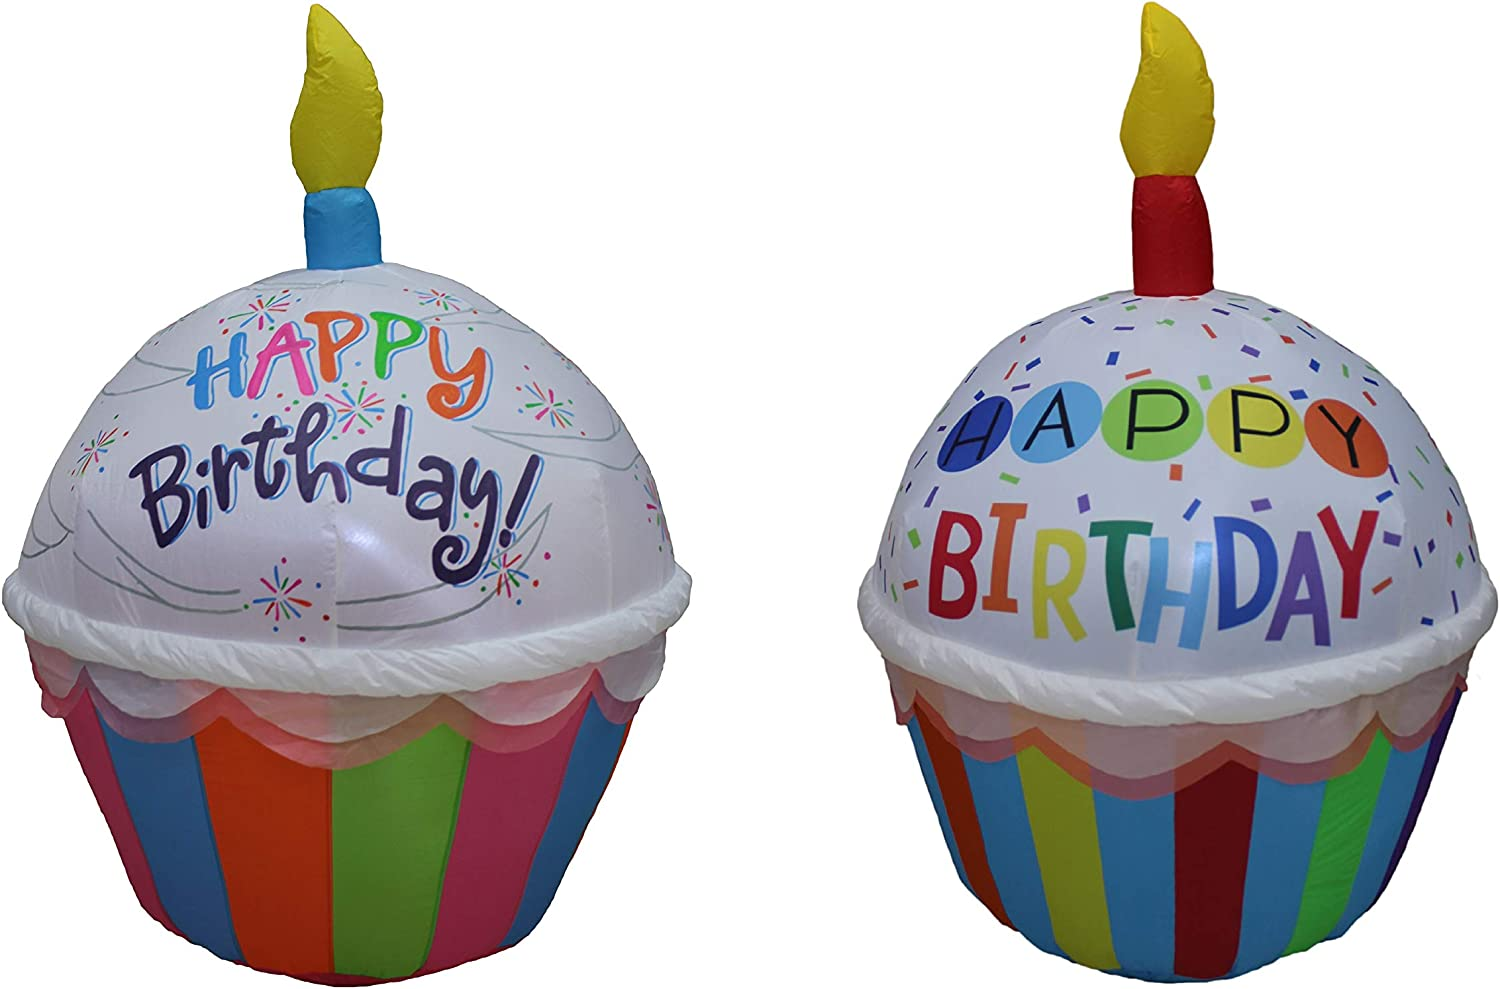 Two Birthday Party Decorations Bundle, Includes 4 Foot Tall Cute Happy Birthday Inflatable Cupcake Red Candle, and 4 Foot Tall Cute Happy Birthday Inflatable Cupcake Blue Candle Blowup with Lights